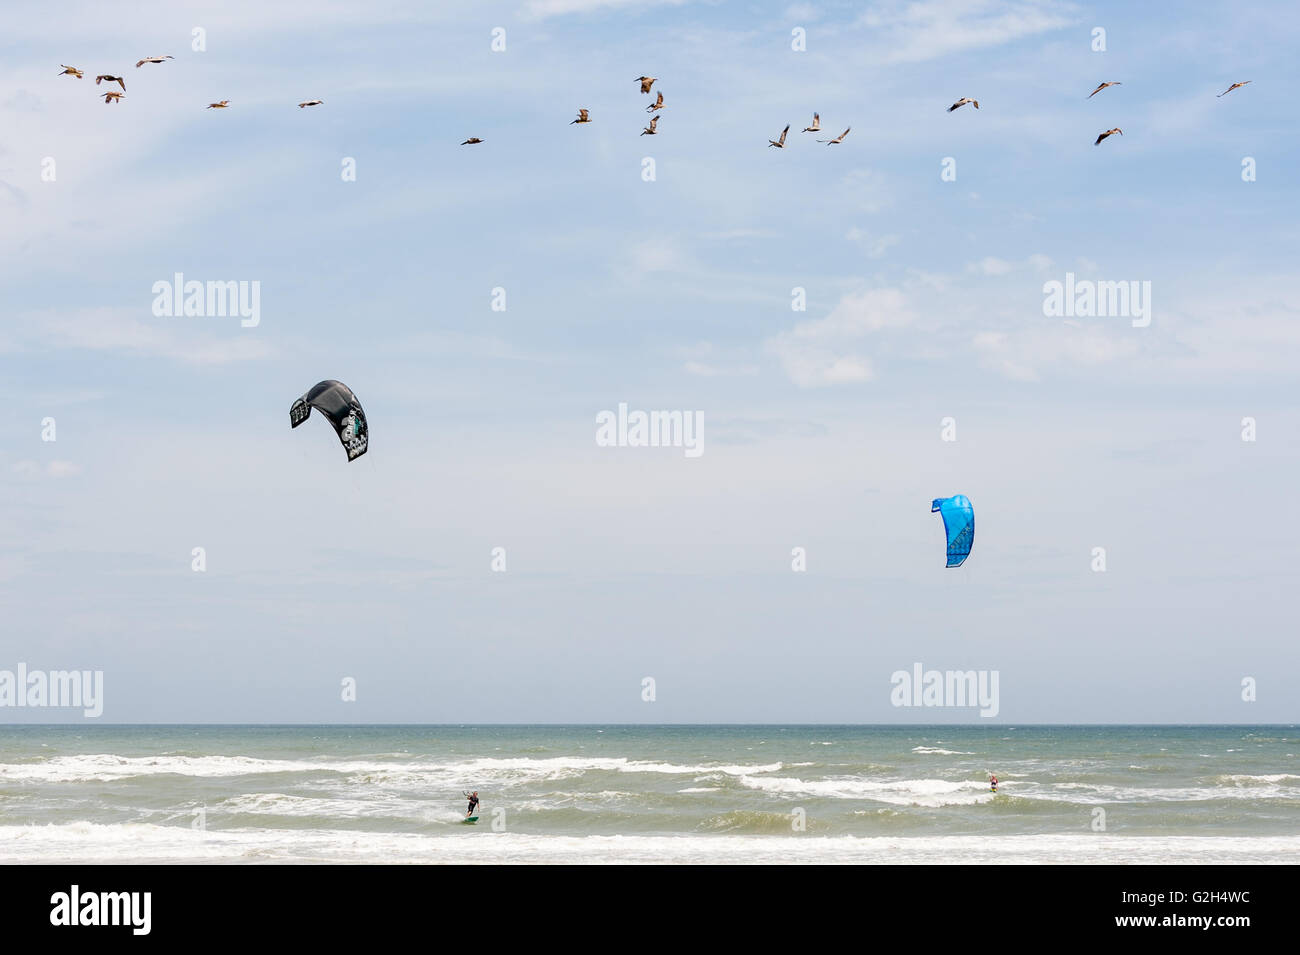 Pelicans and kitesurfers share the sky on a St. Augustine beach in North Florida. (USA) - Stock Image